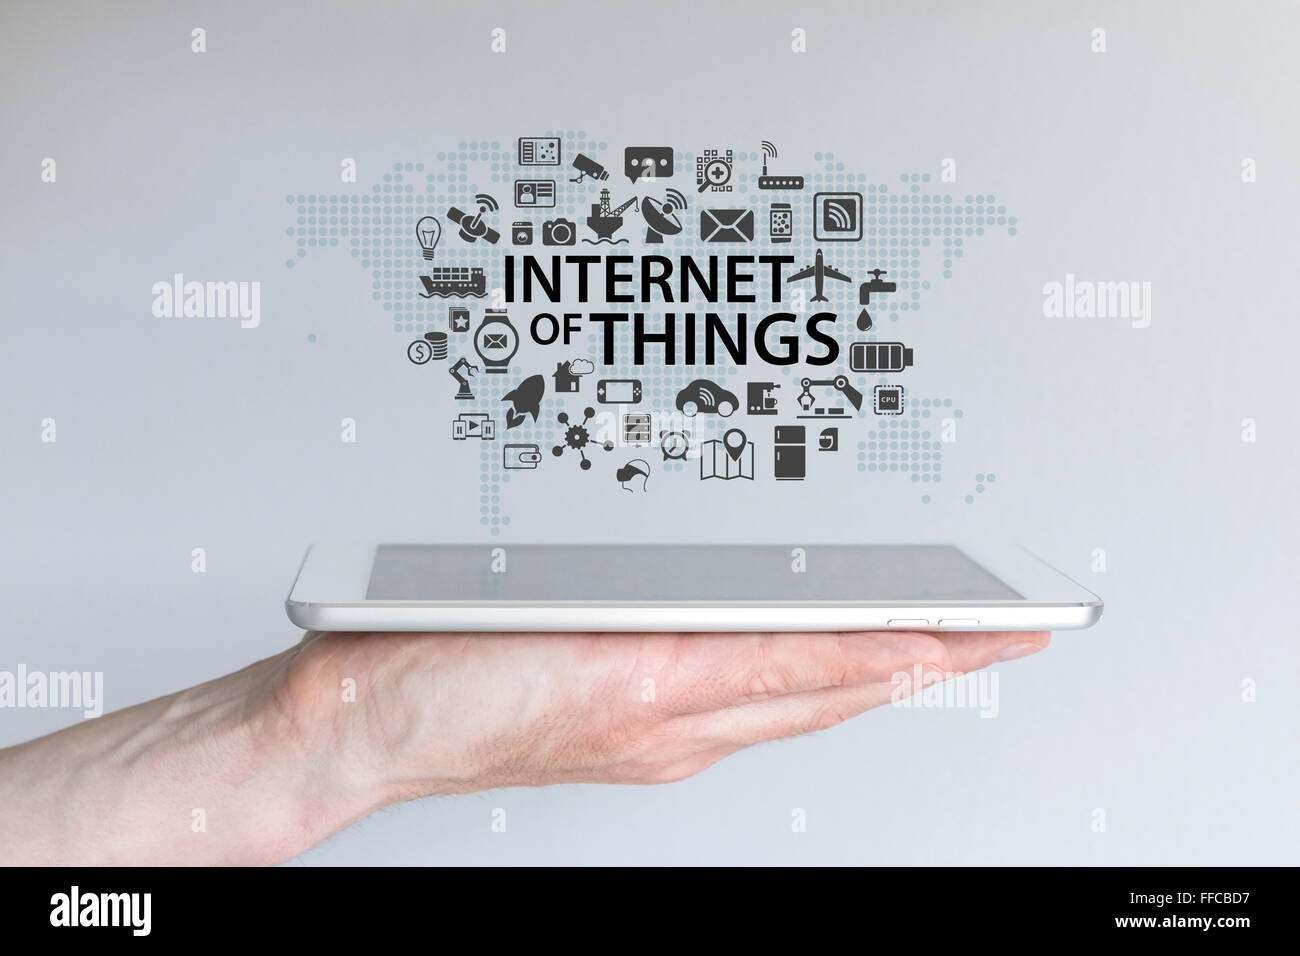 Hand holding tablet or modern smart phone. Internet of things (IOT) background concept. - Stock Image